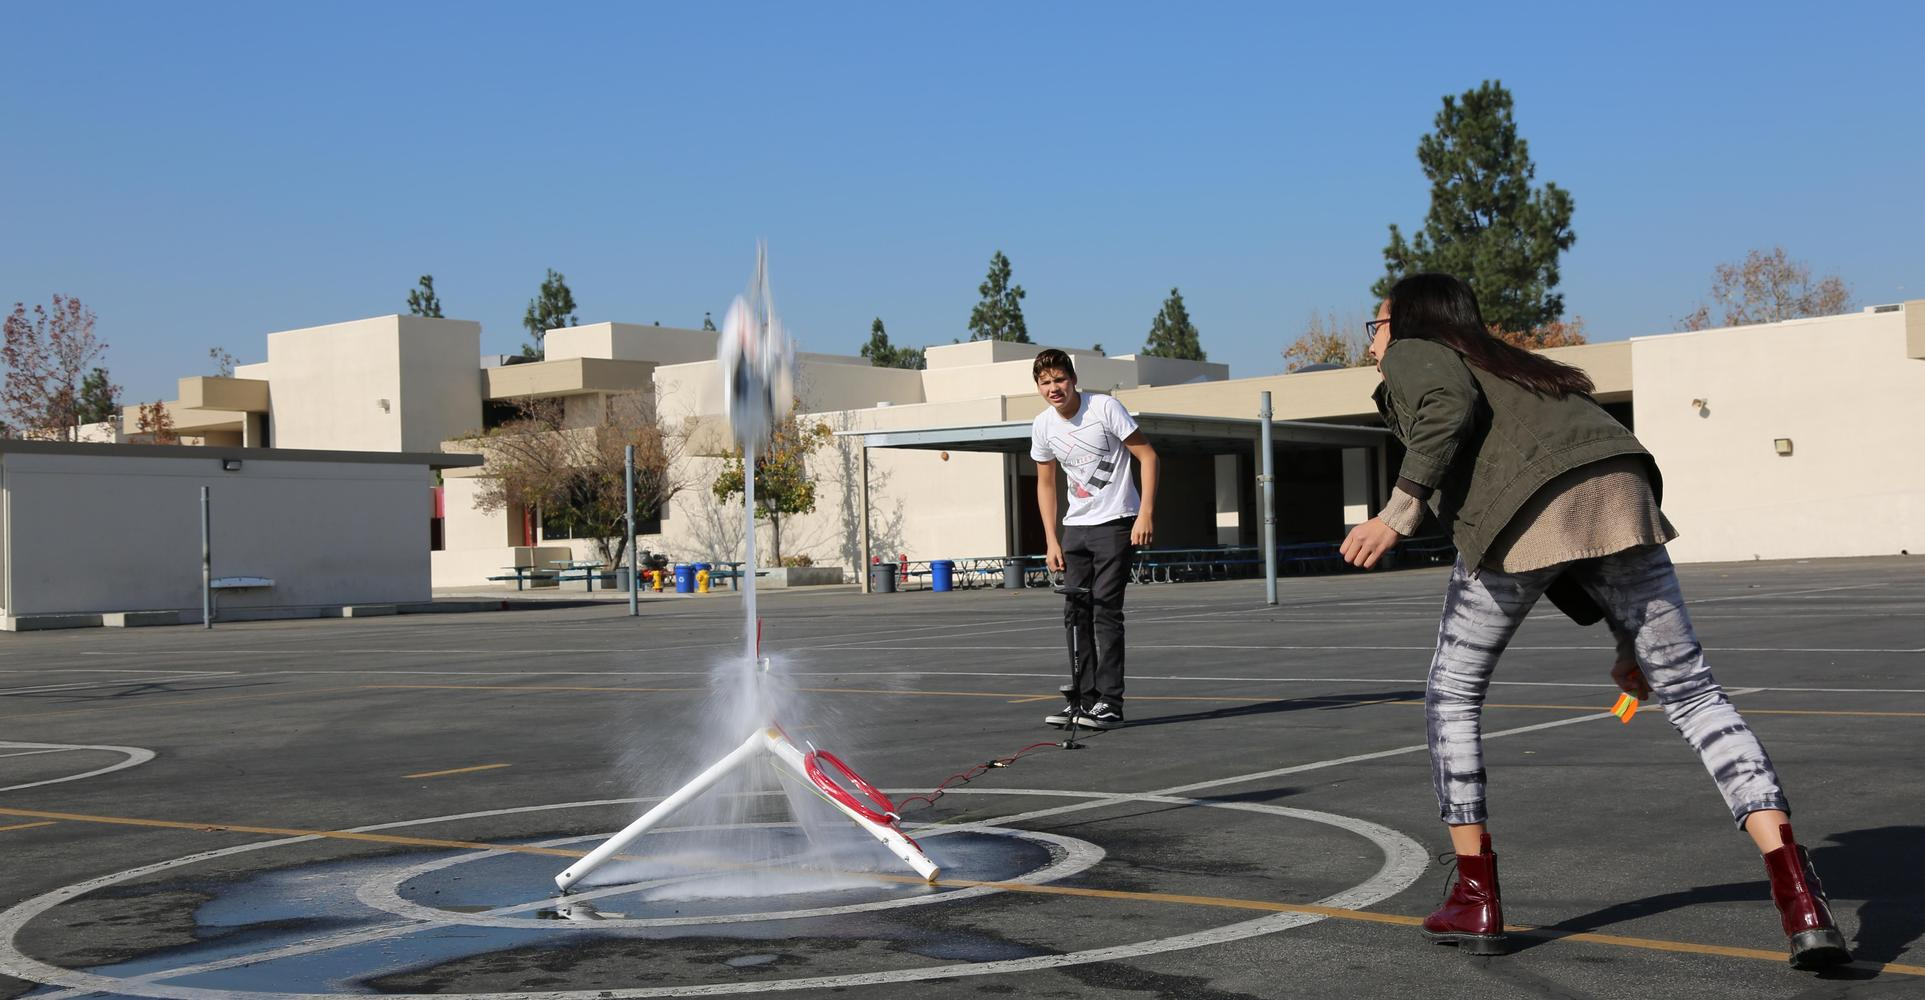 Students launch rocket.